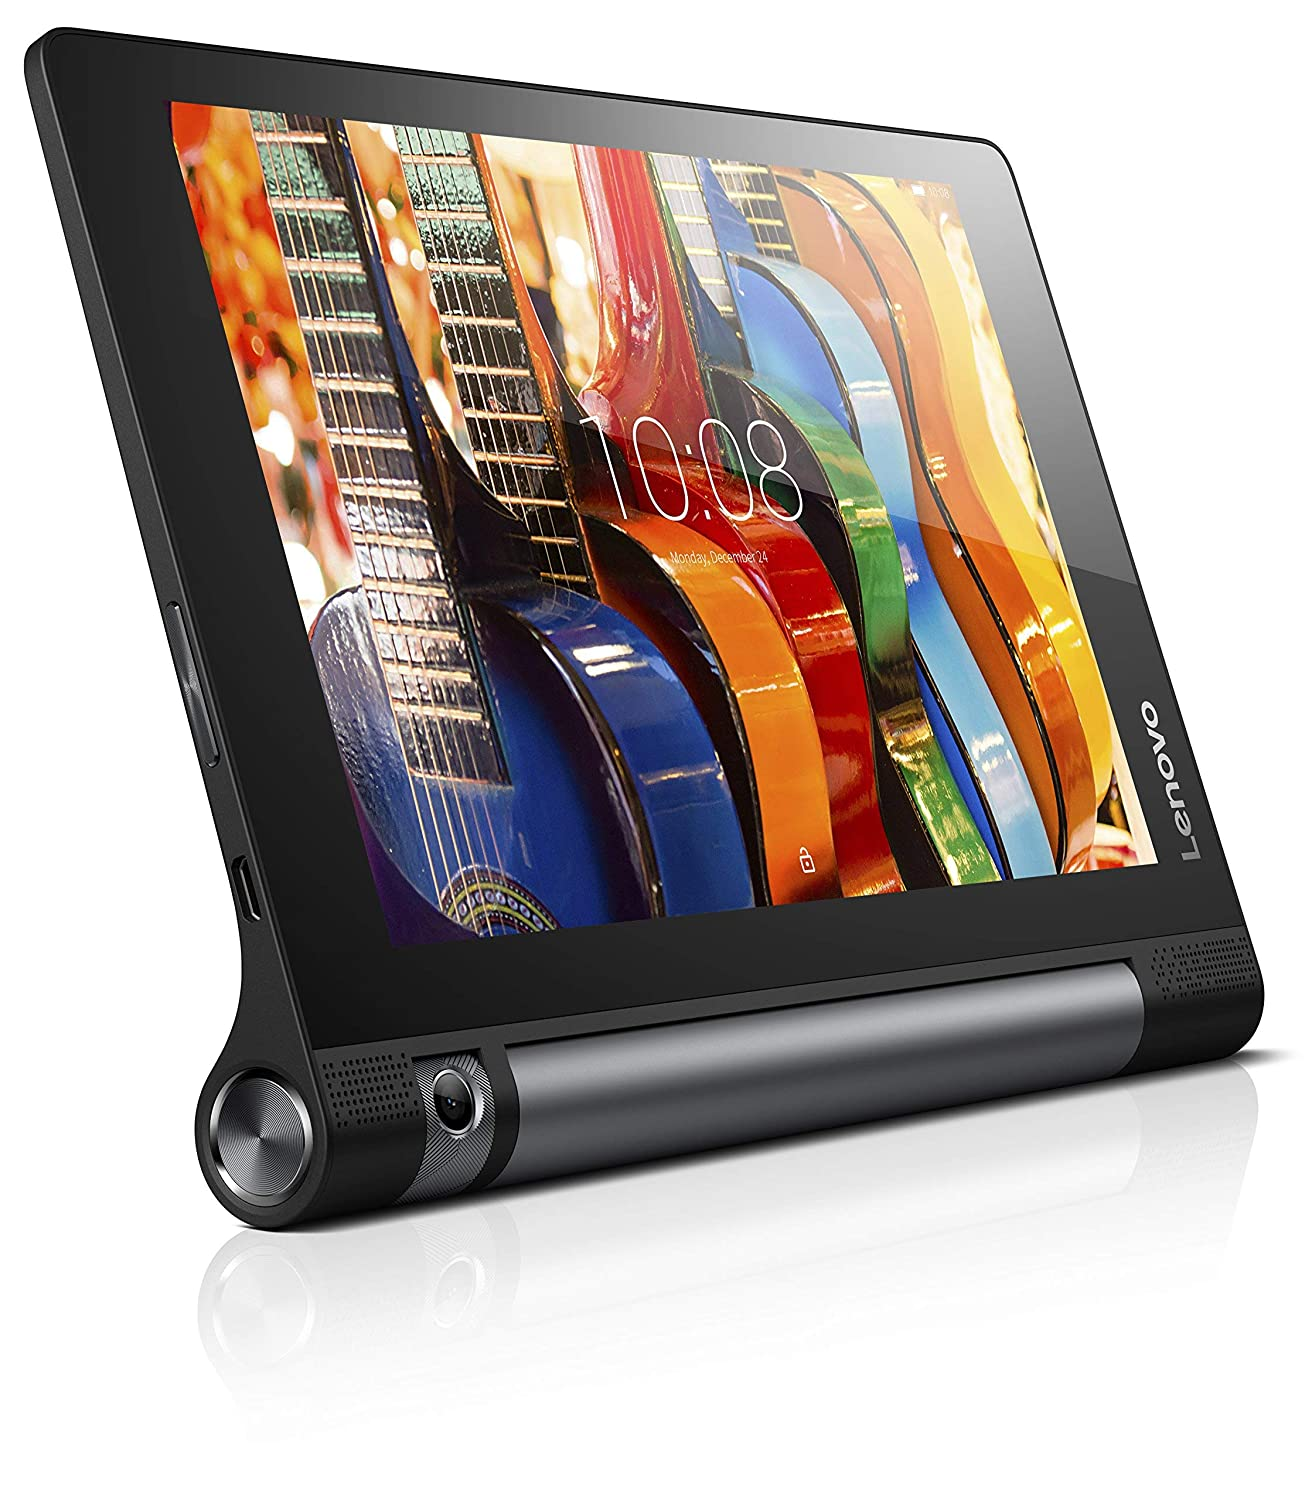 Lenovo Yoga Tab3 8 Inch Android Tablet Renewed